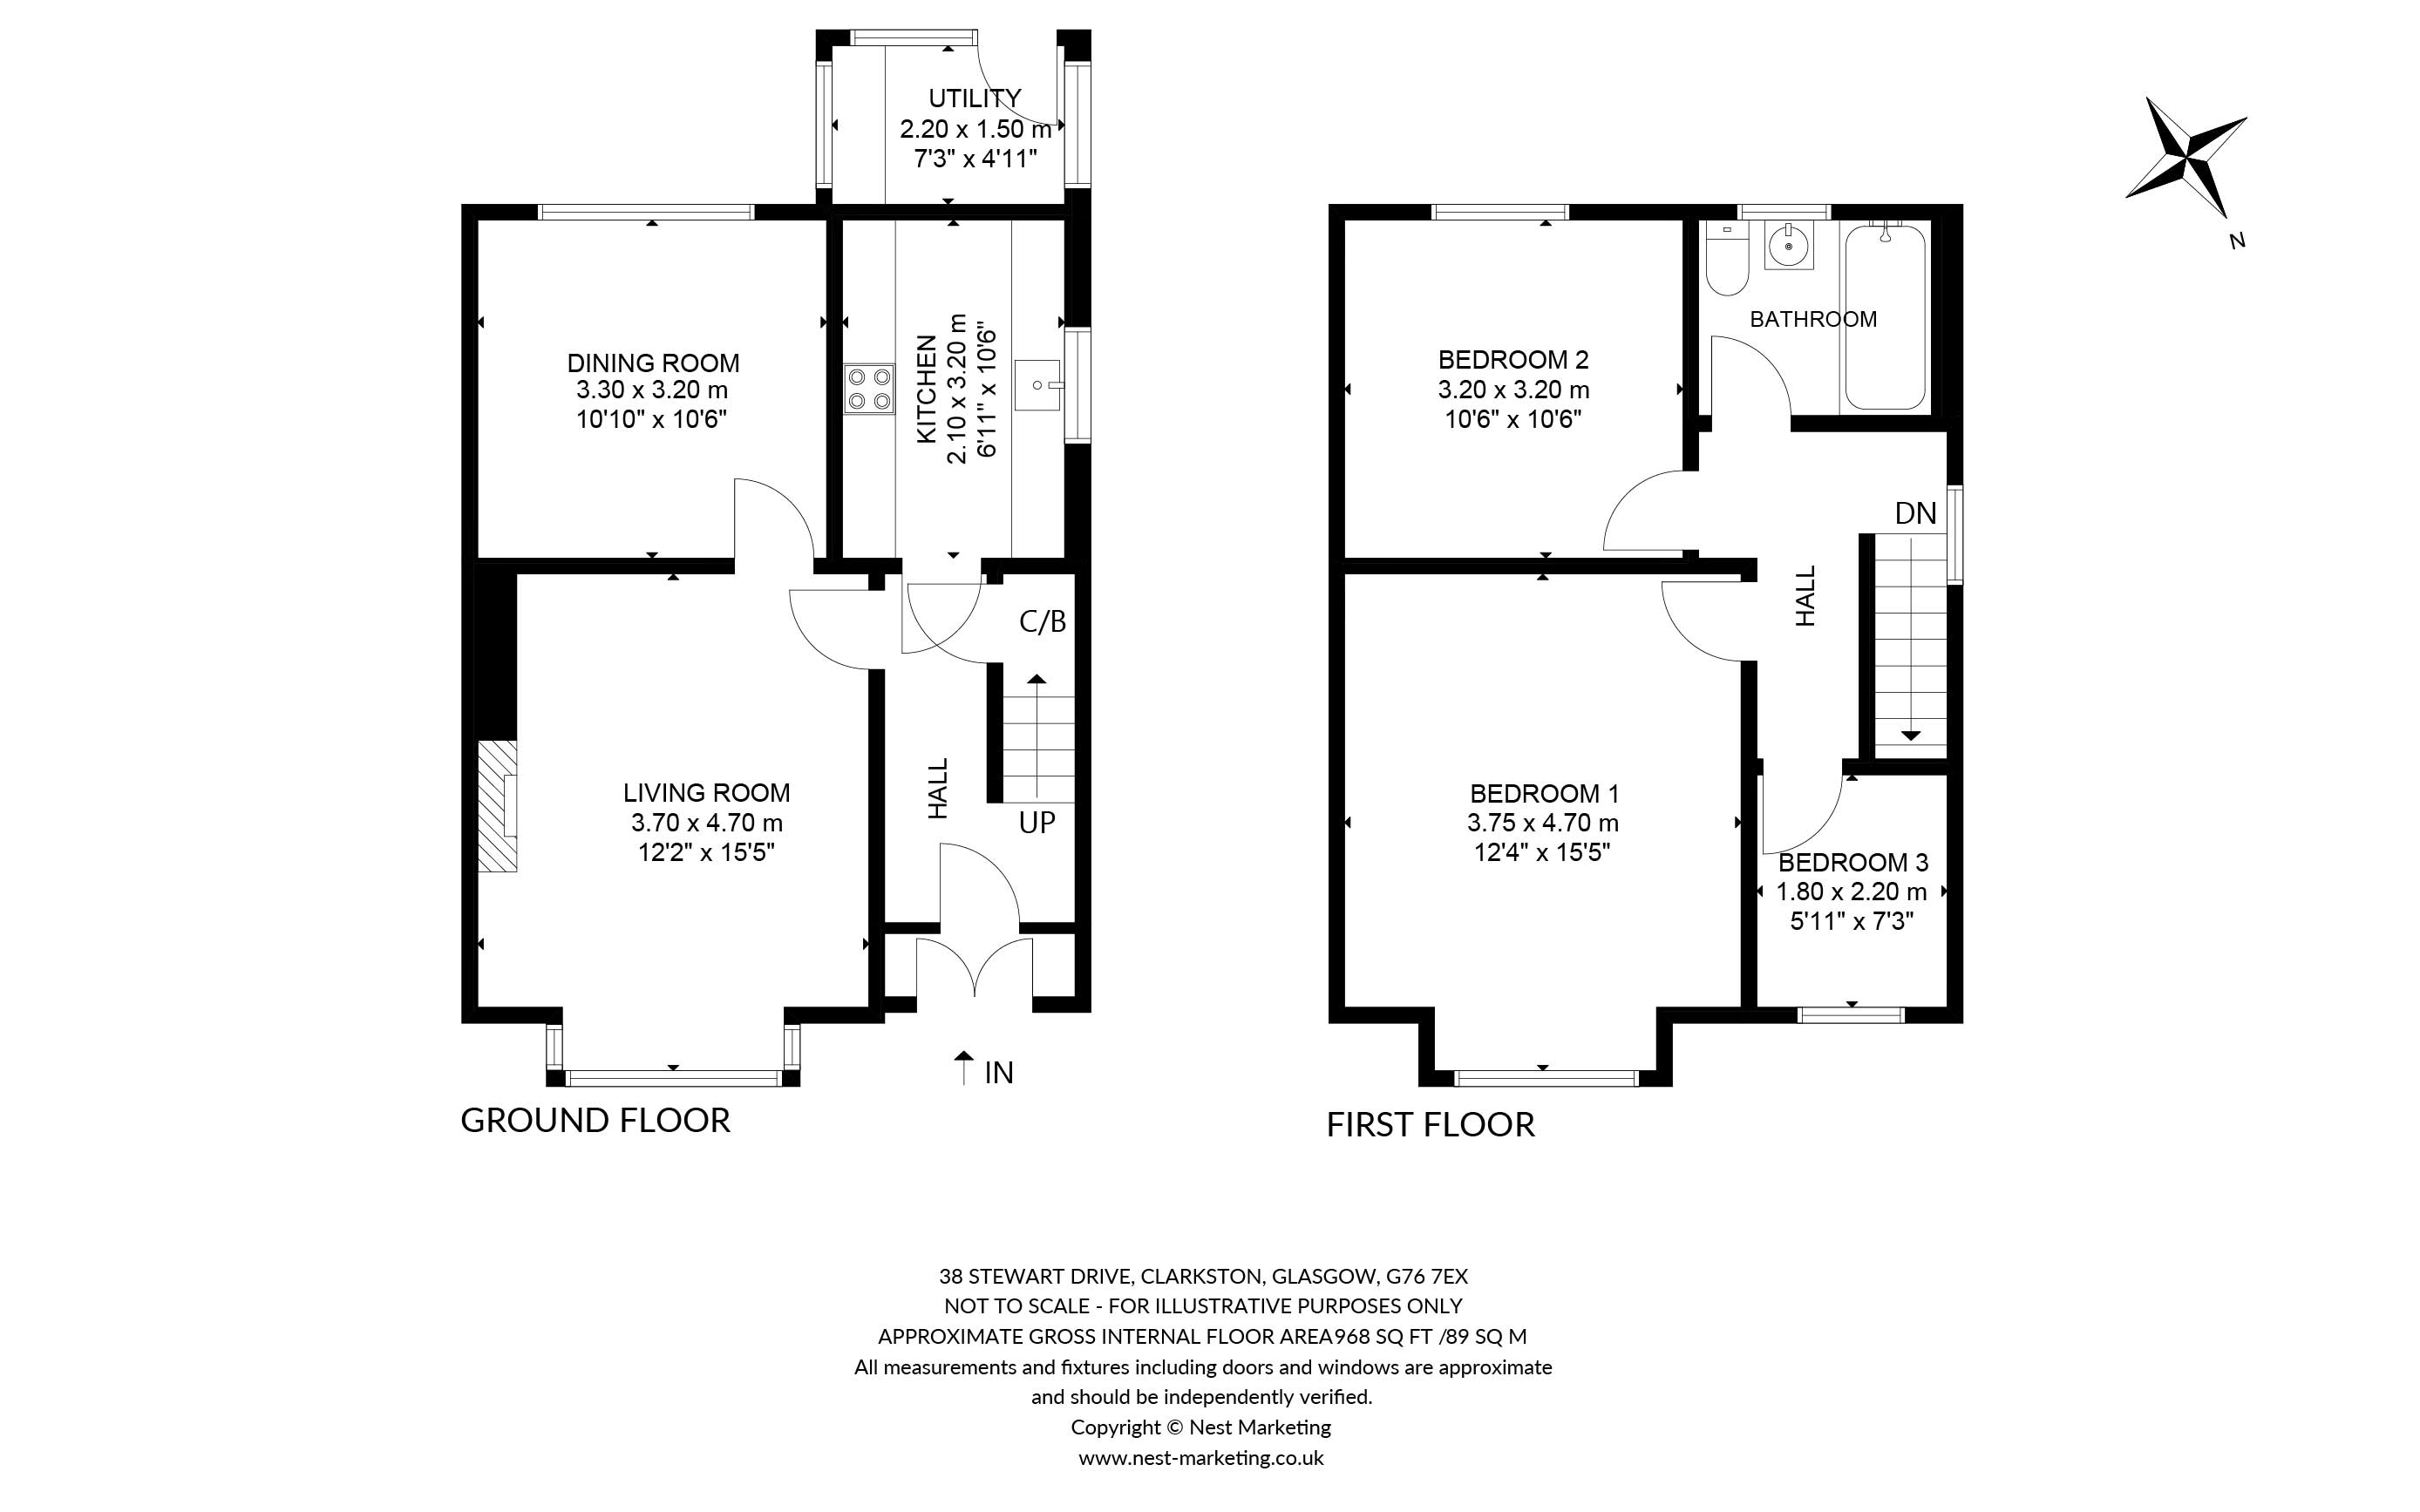 Floorplans for Stewart Drive, Clarkston, Glasgow, G76